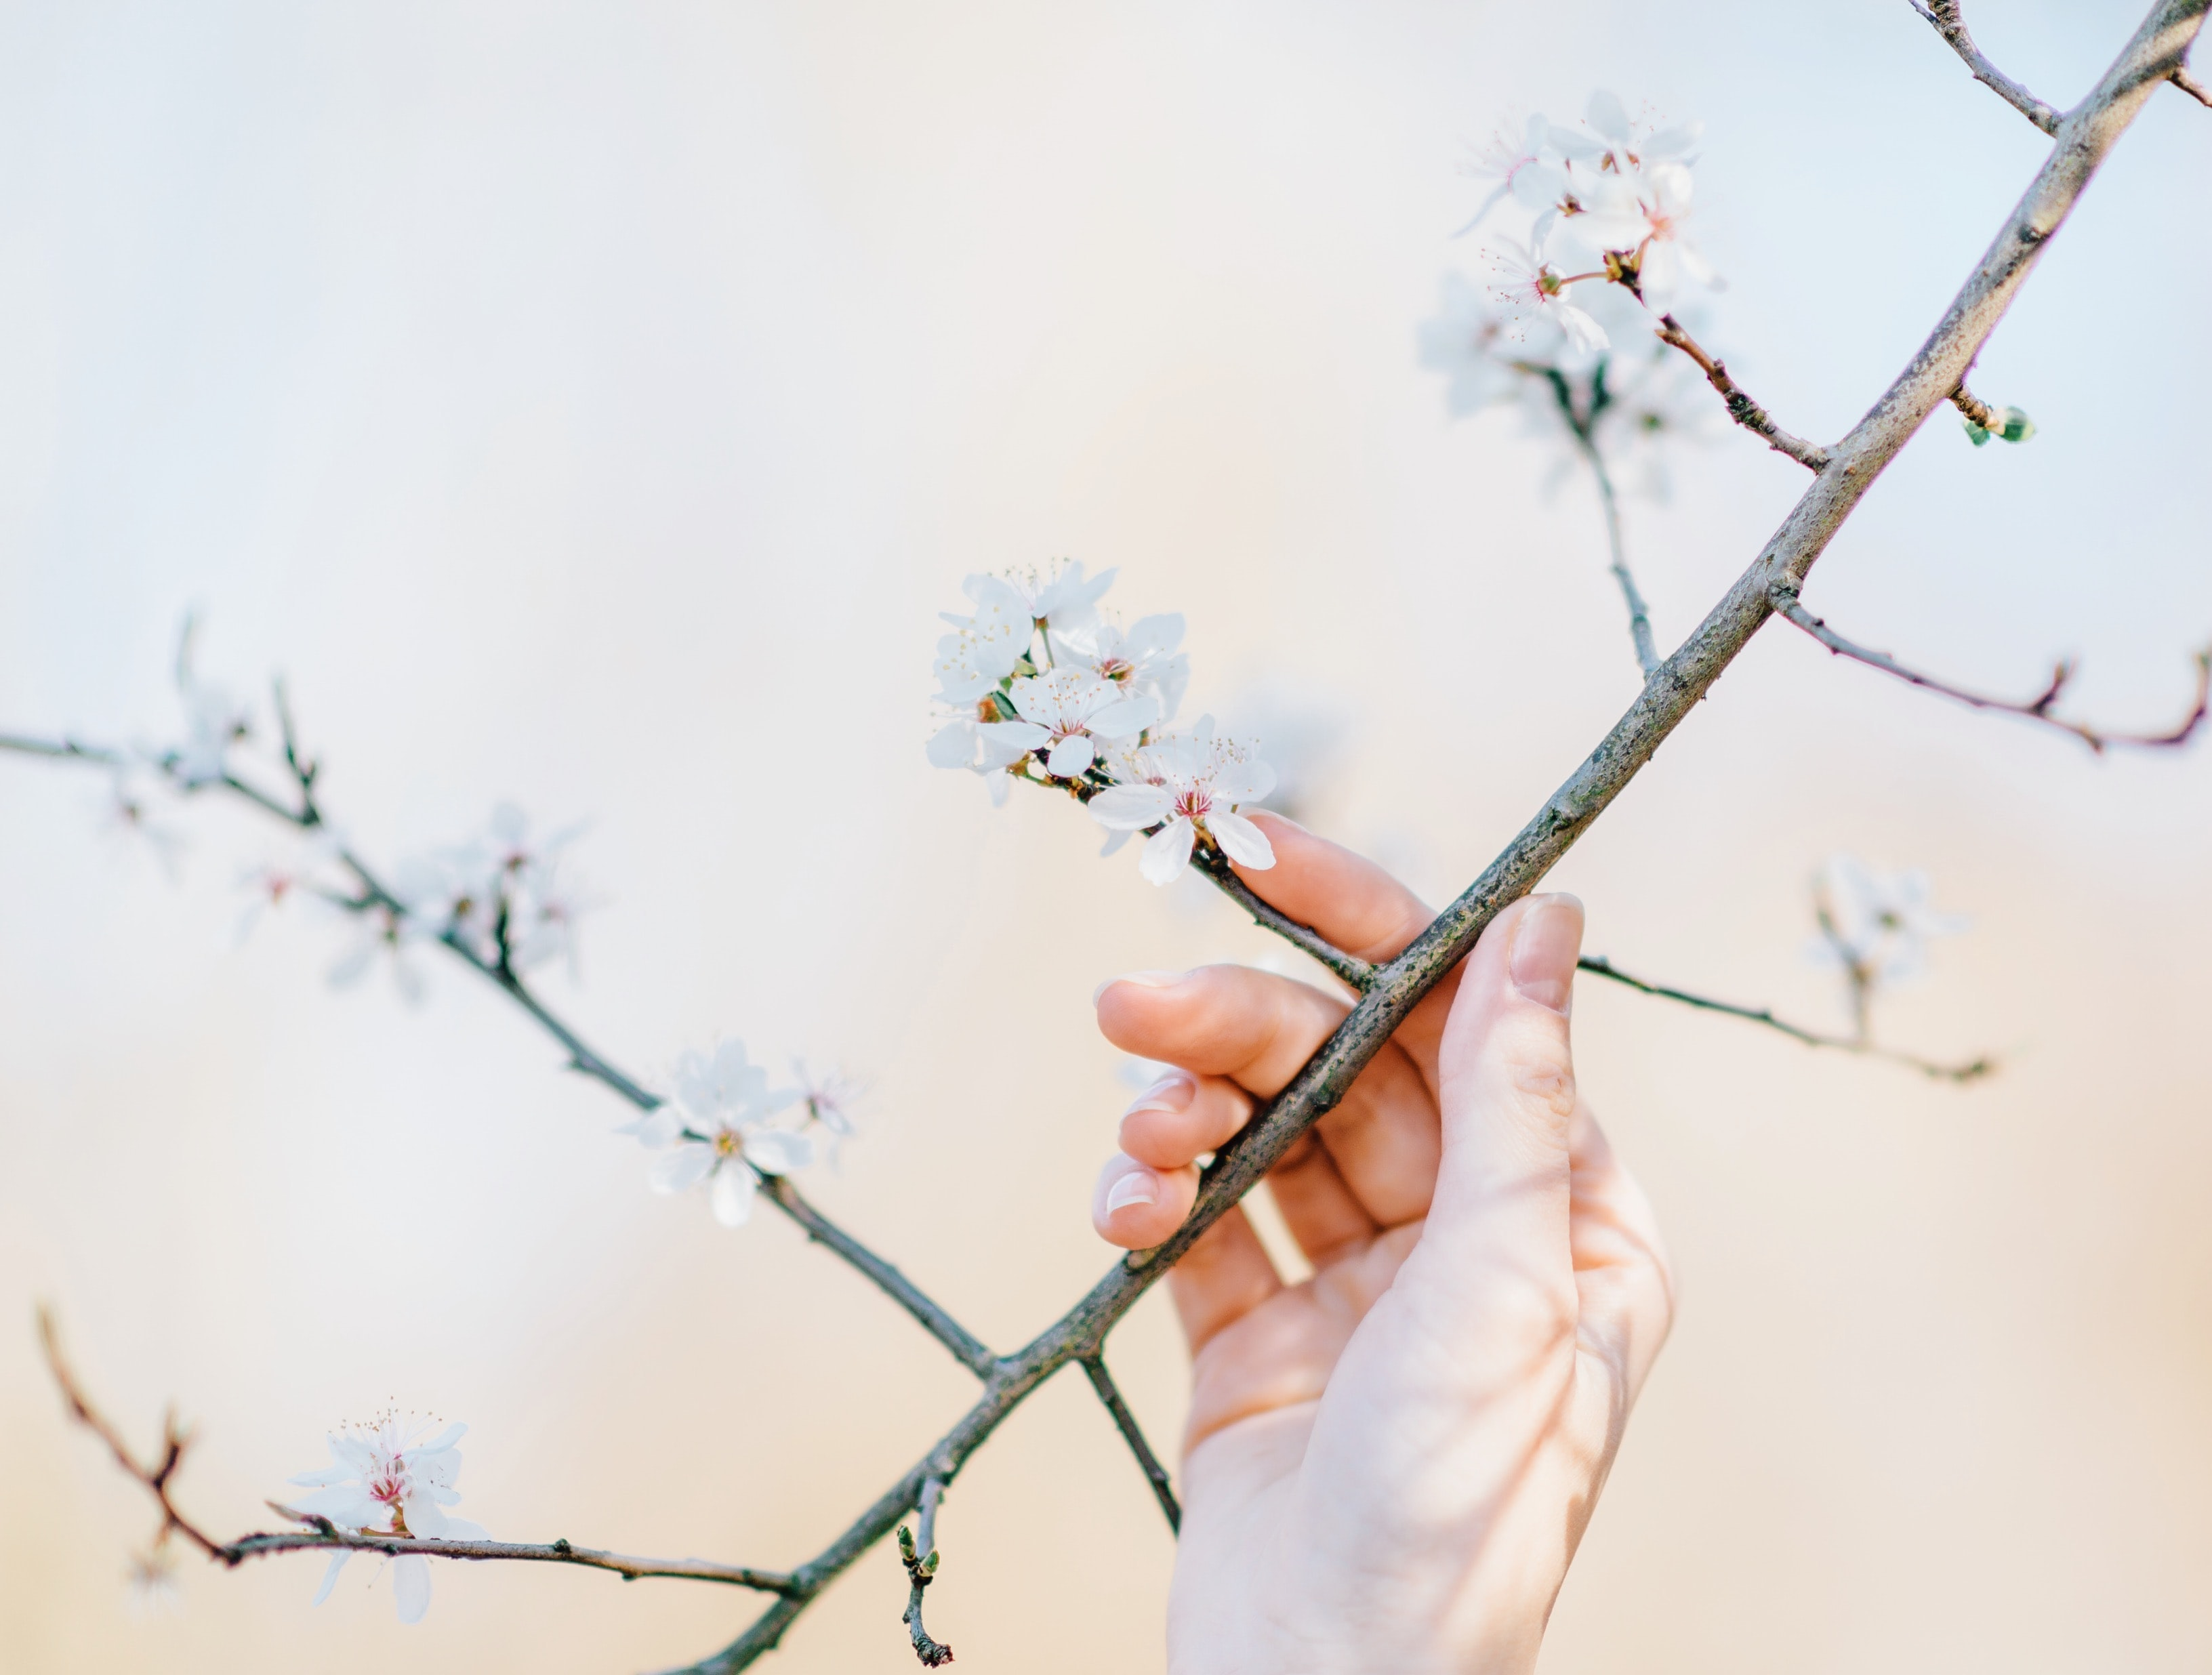 person holding cherry blossom flower during daytime